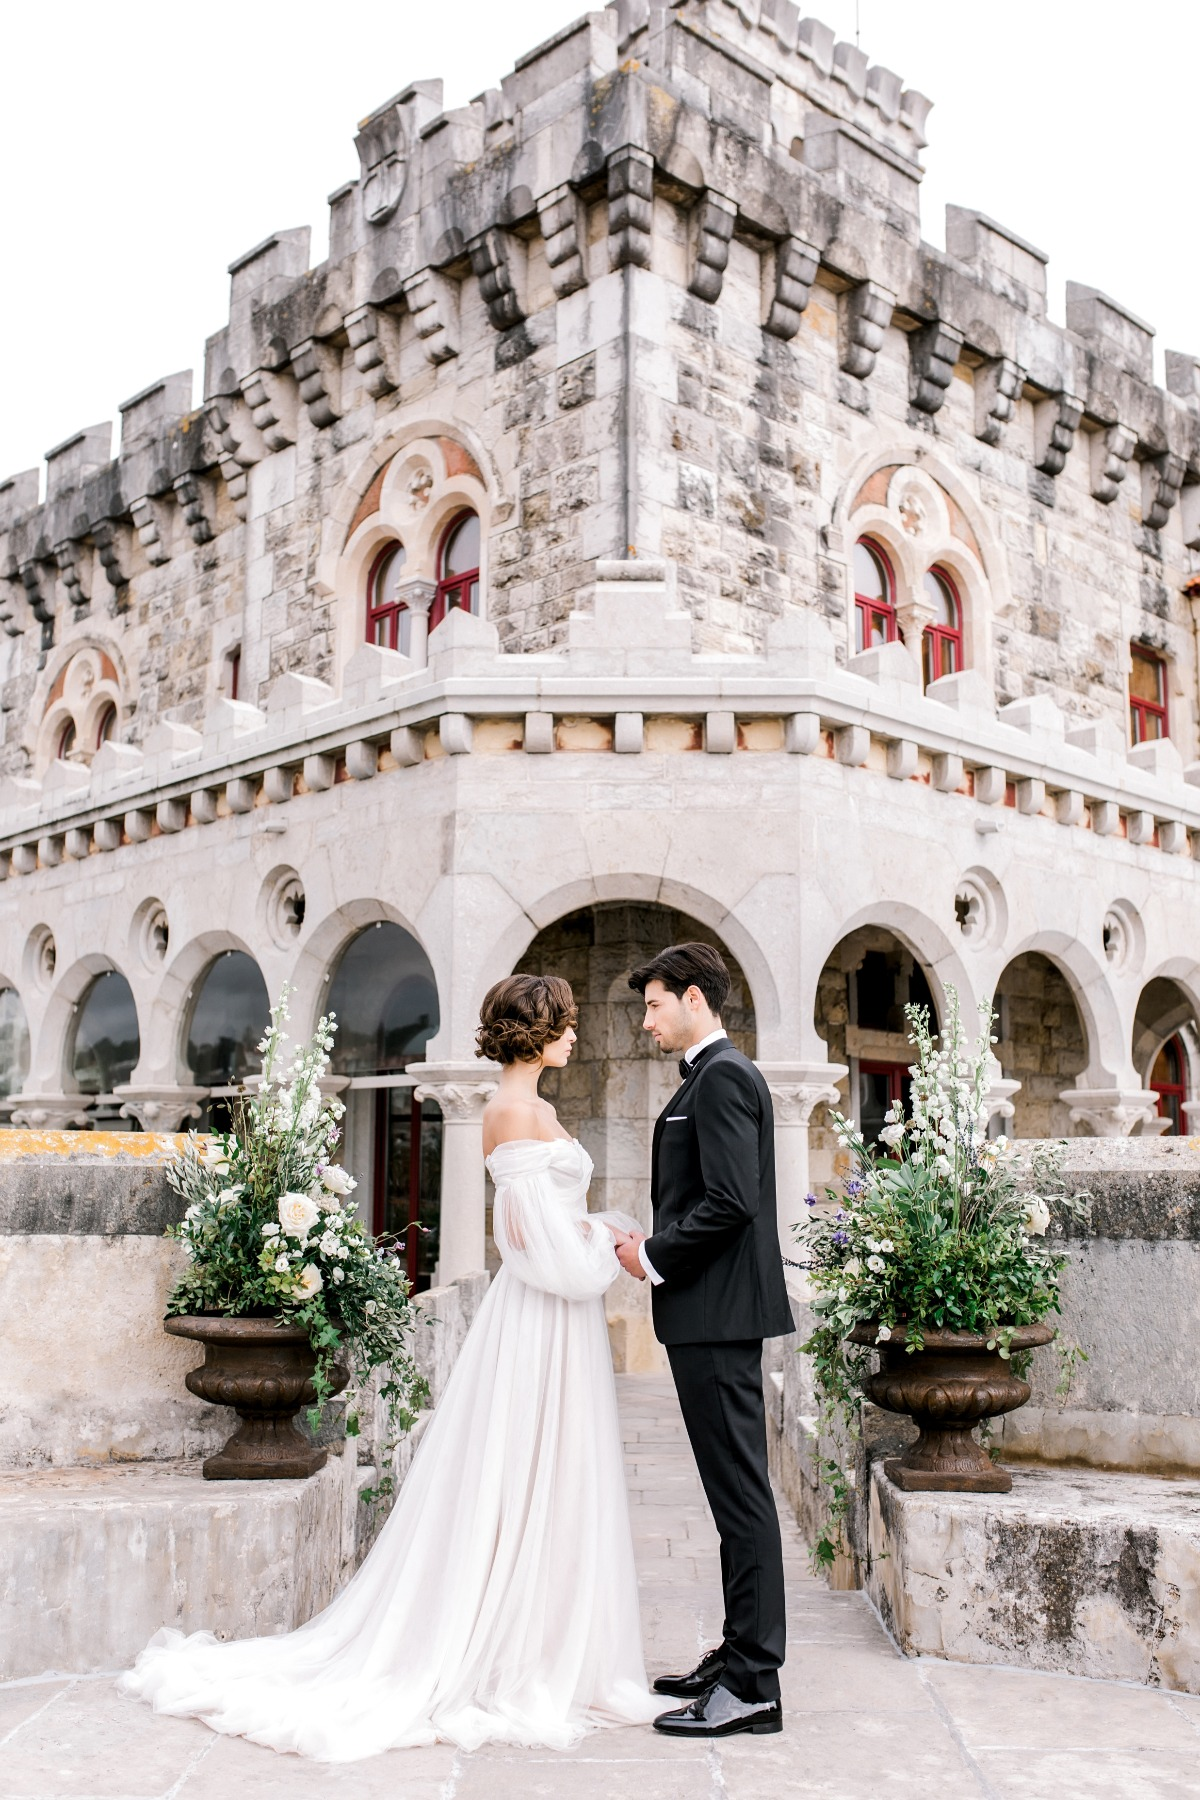 Fairy Tale Castle wedding venue in Portugal on the Ocean